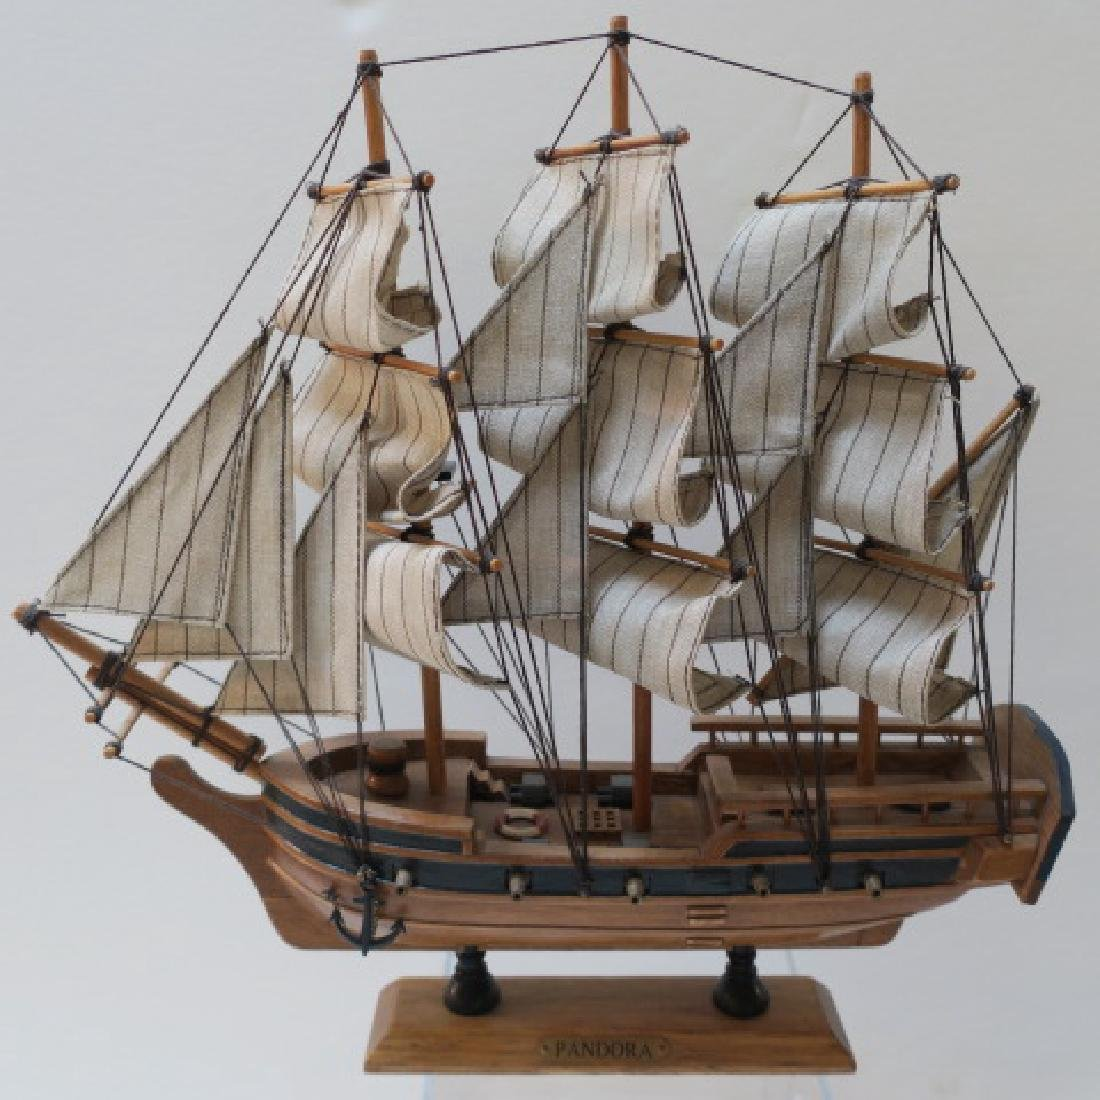 Two Wooden Model Clipper Ships, Pandora and Red Jacket - 3